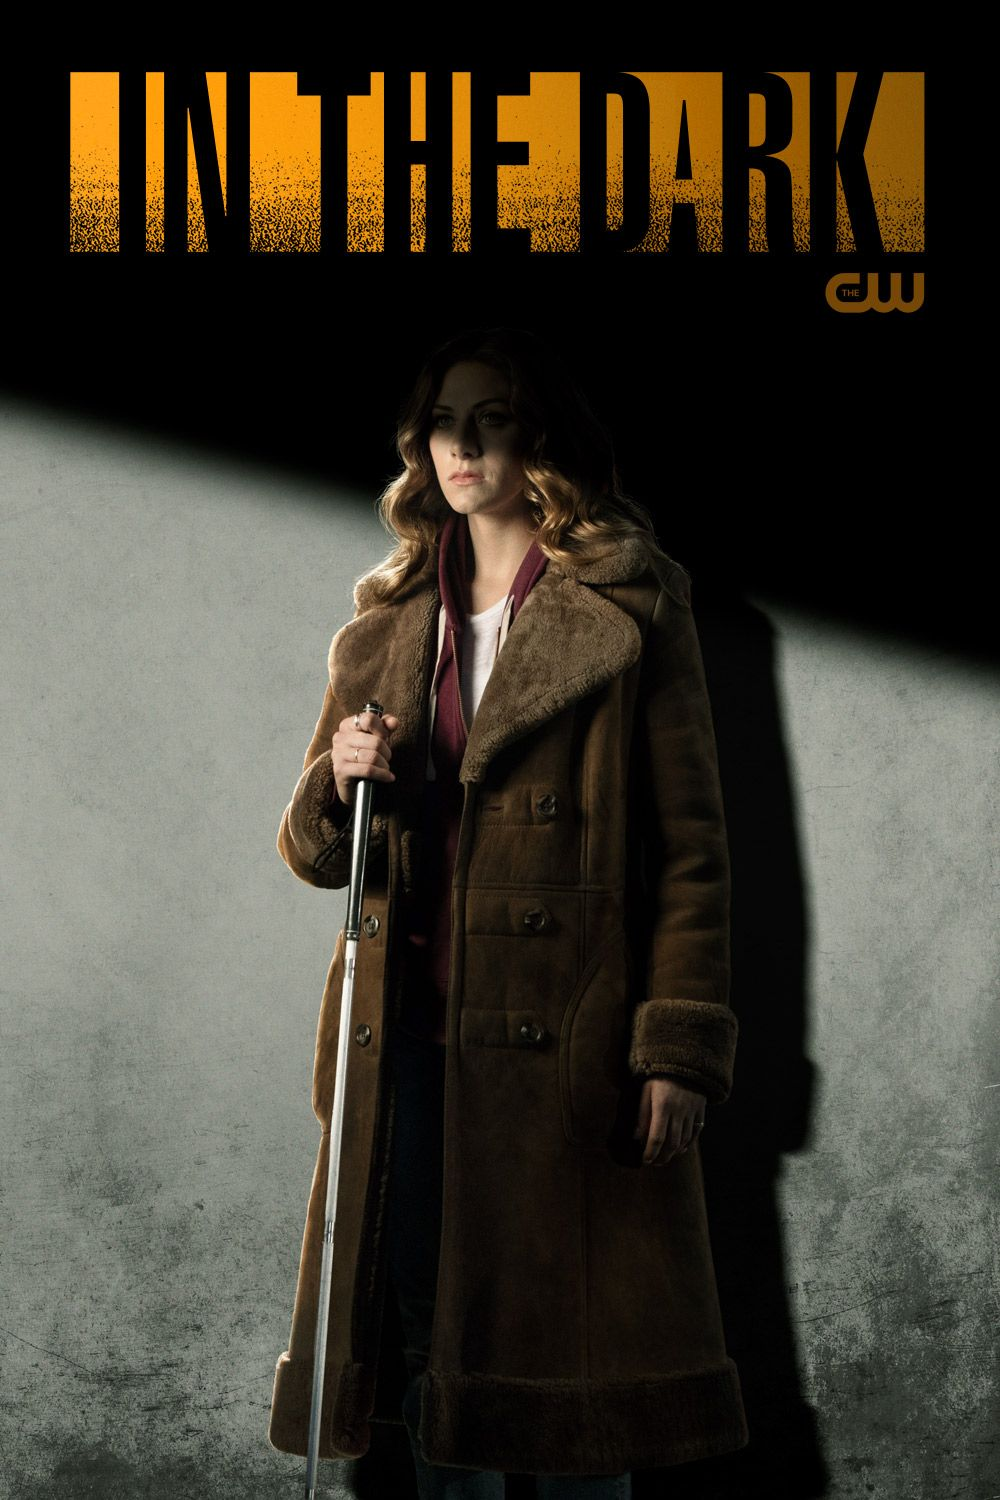 In The Dark premieres tonight at 9/8c on The CW! Stream